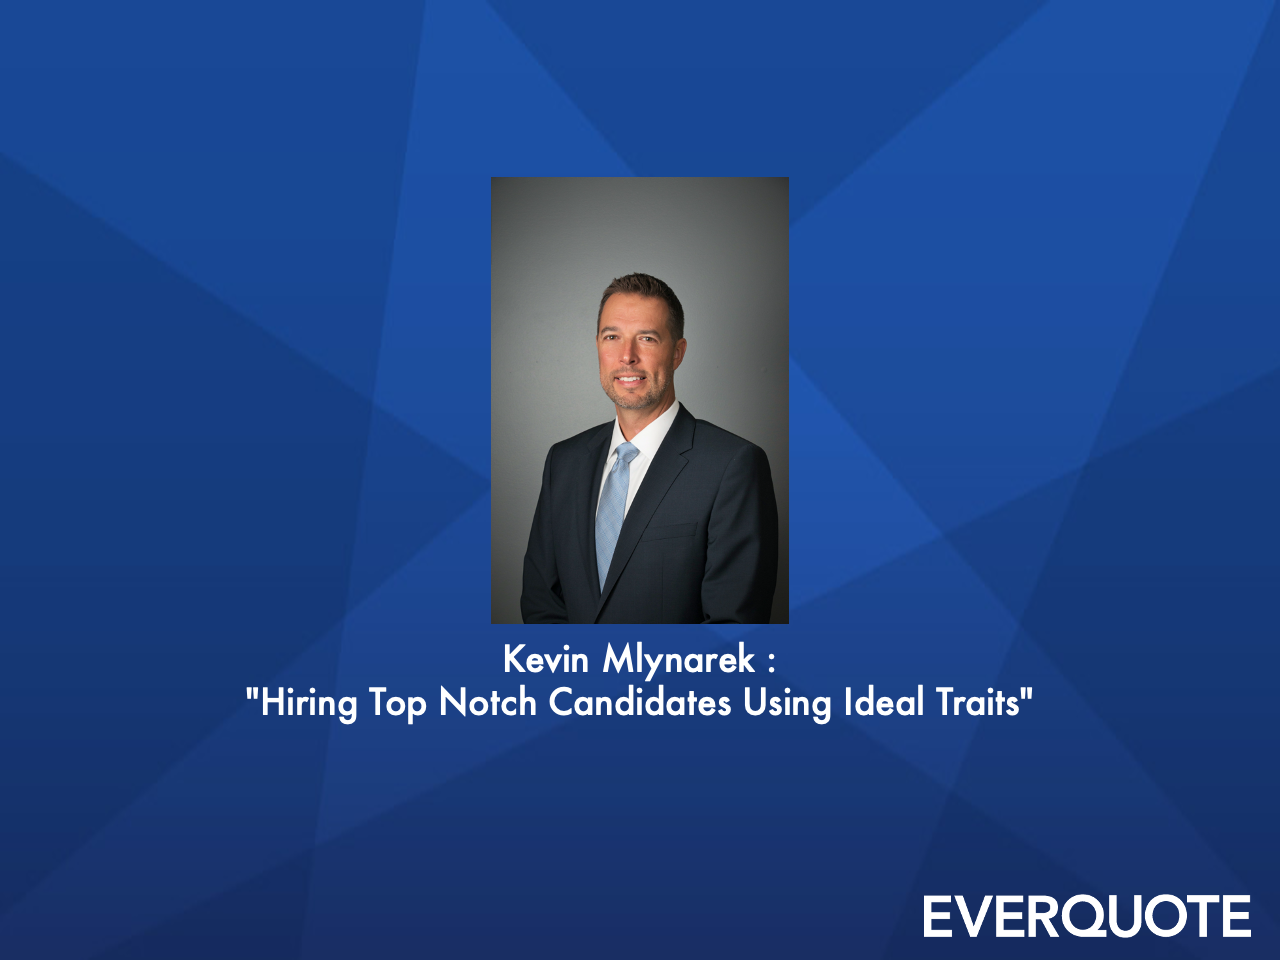 Hiring Top Notch Candidates Using Ideal Traits with Kevin Mlynarek